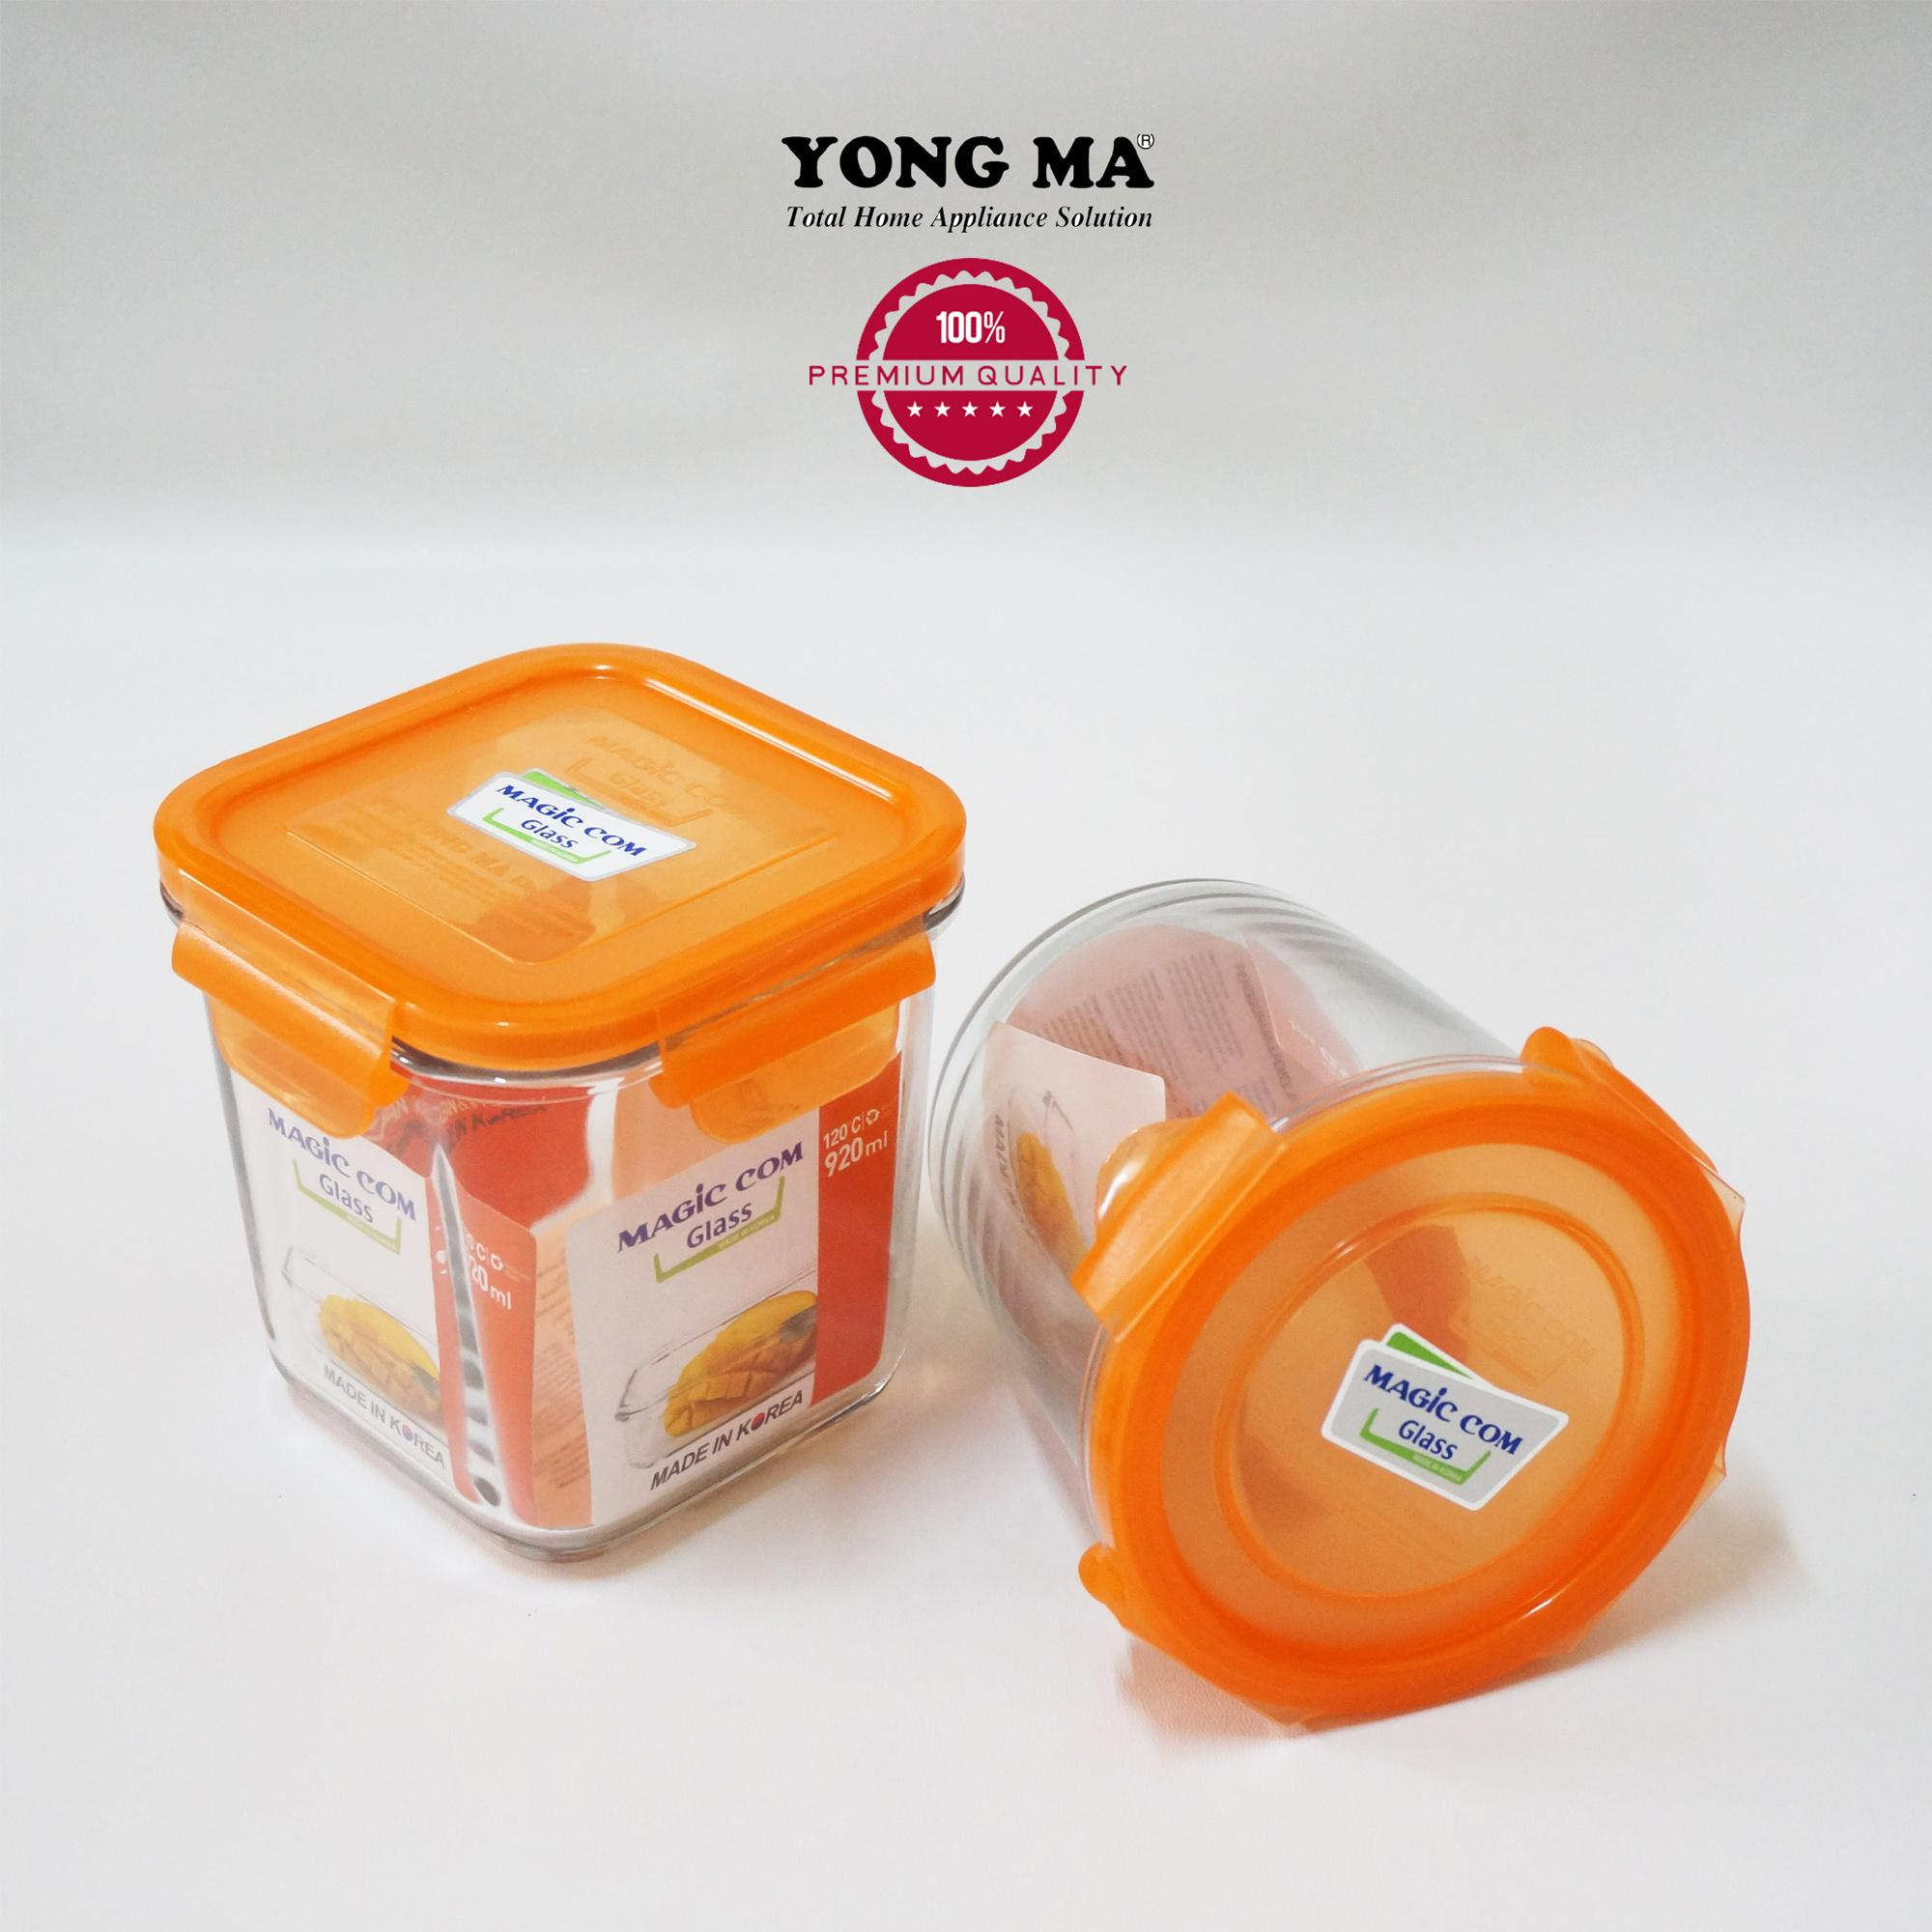 TOPLES GLASS MAGIC COM YMG753CI FOR MICROWAVE MADE IN KOREA ( 2 PCS )